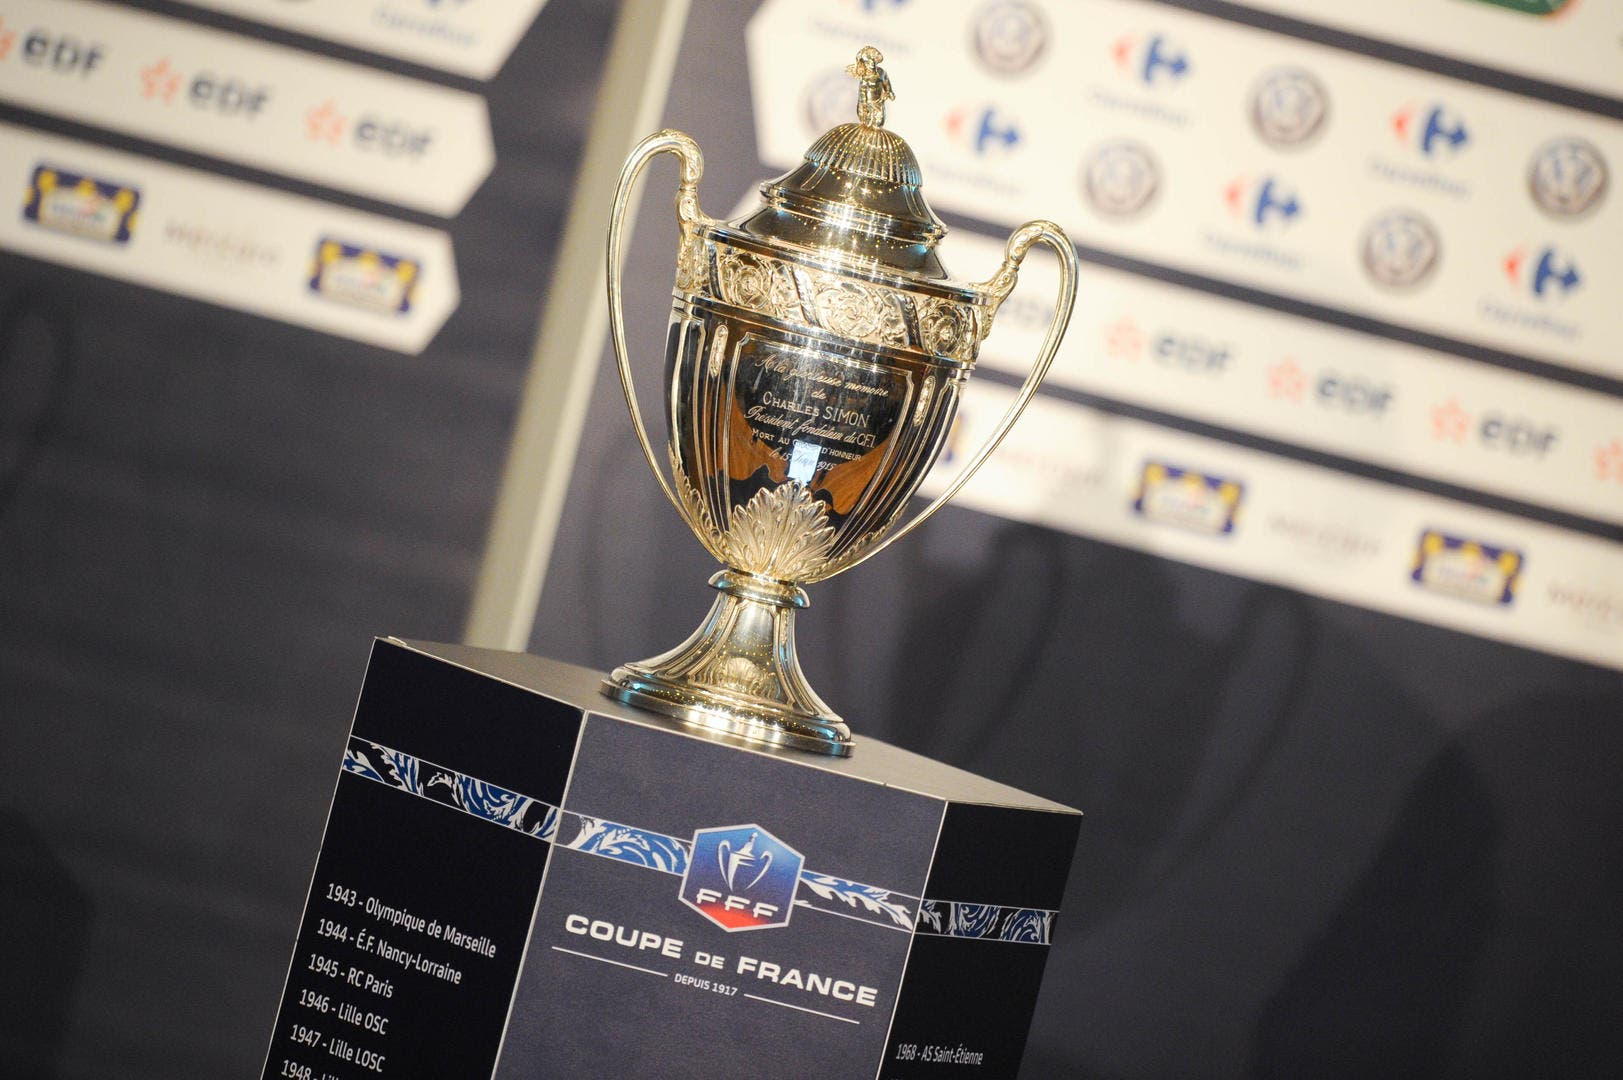 Coupe de france de football cdf r sultats d finitifs - Resultats coupe de france 2015 ...